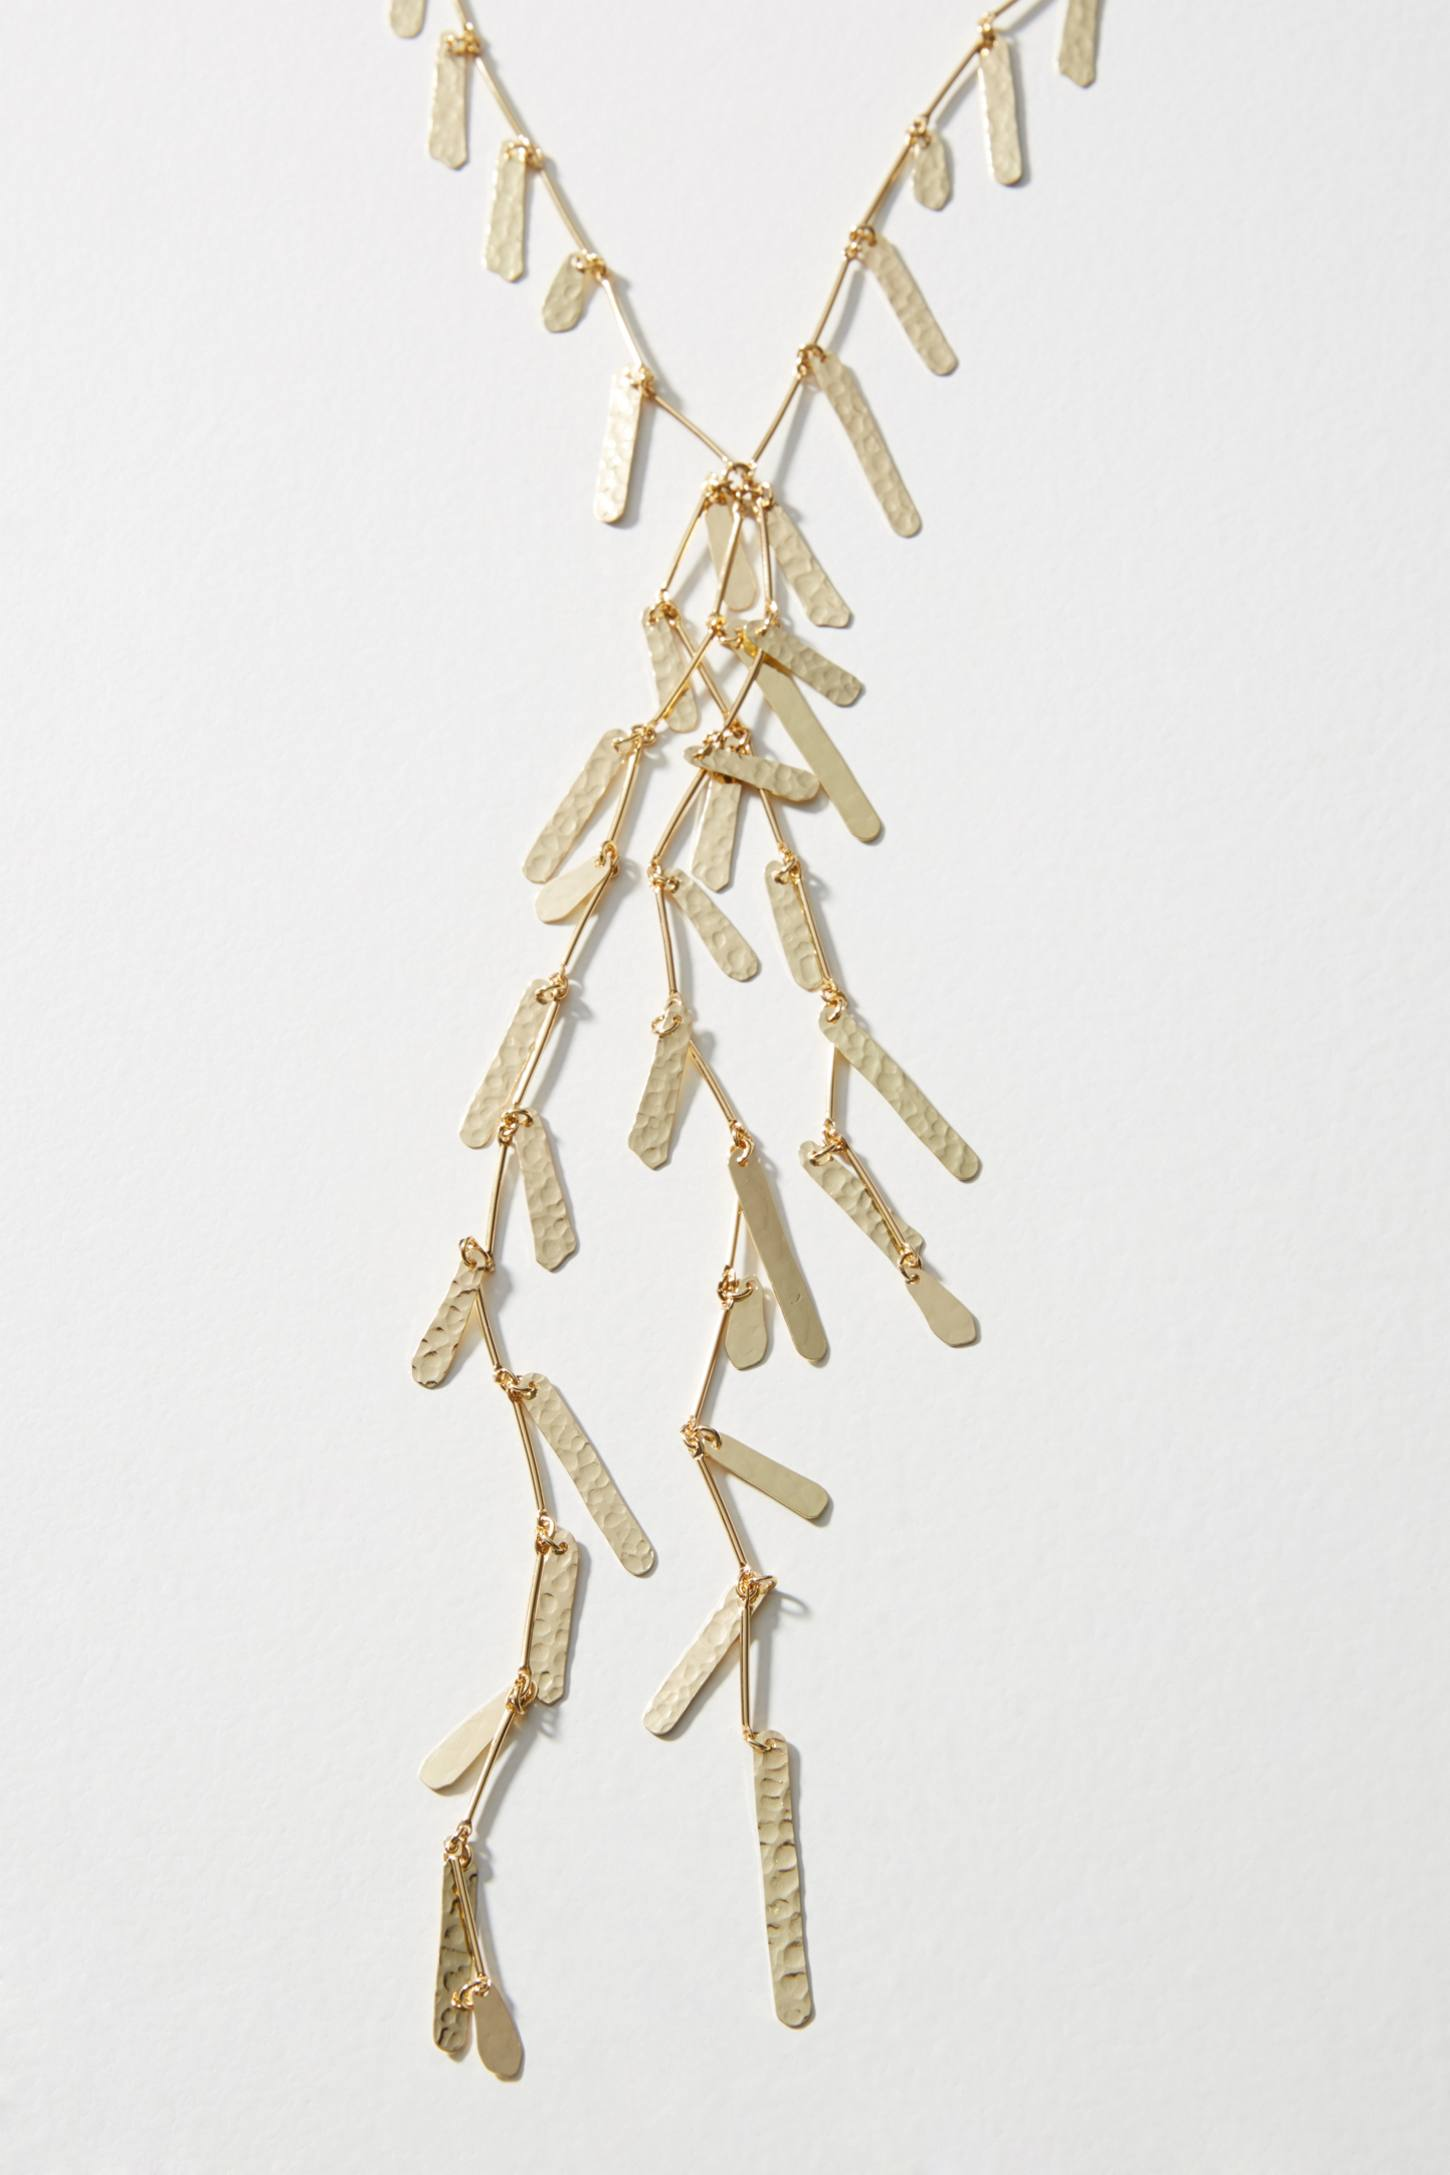 Anthropologie Spring Showers Y-Necklace